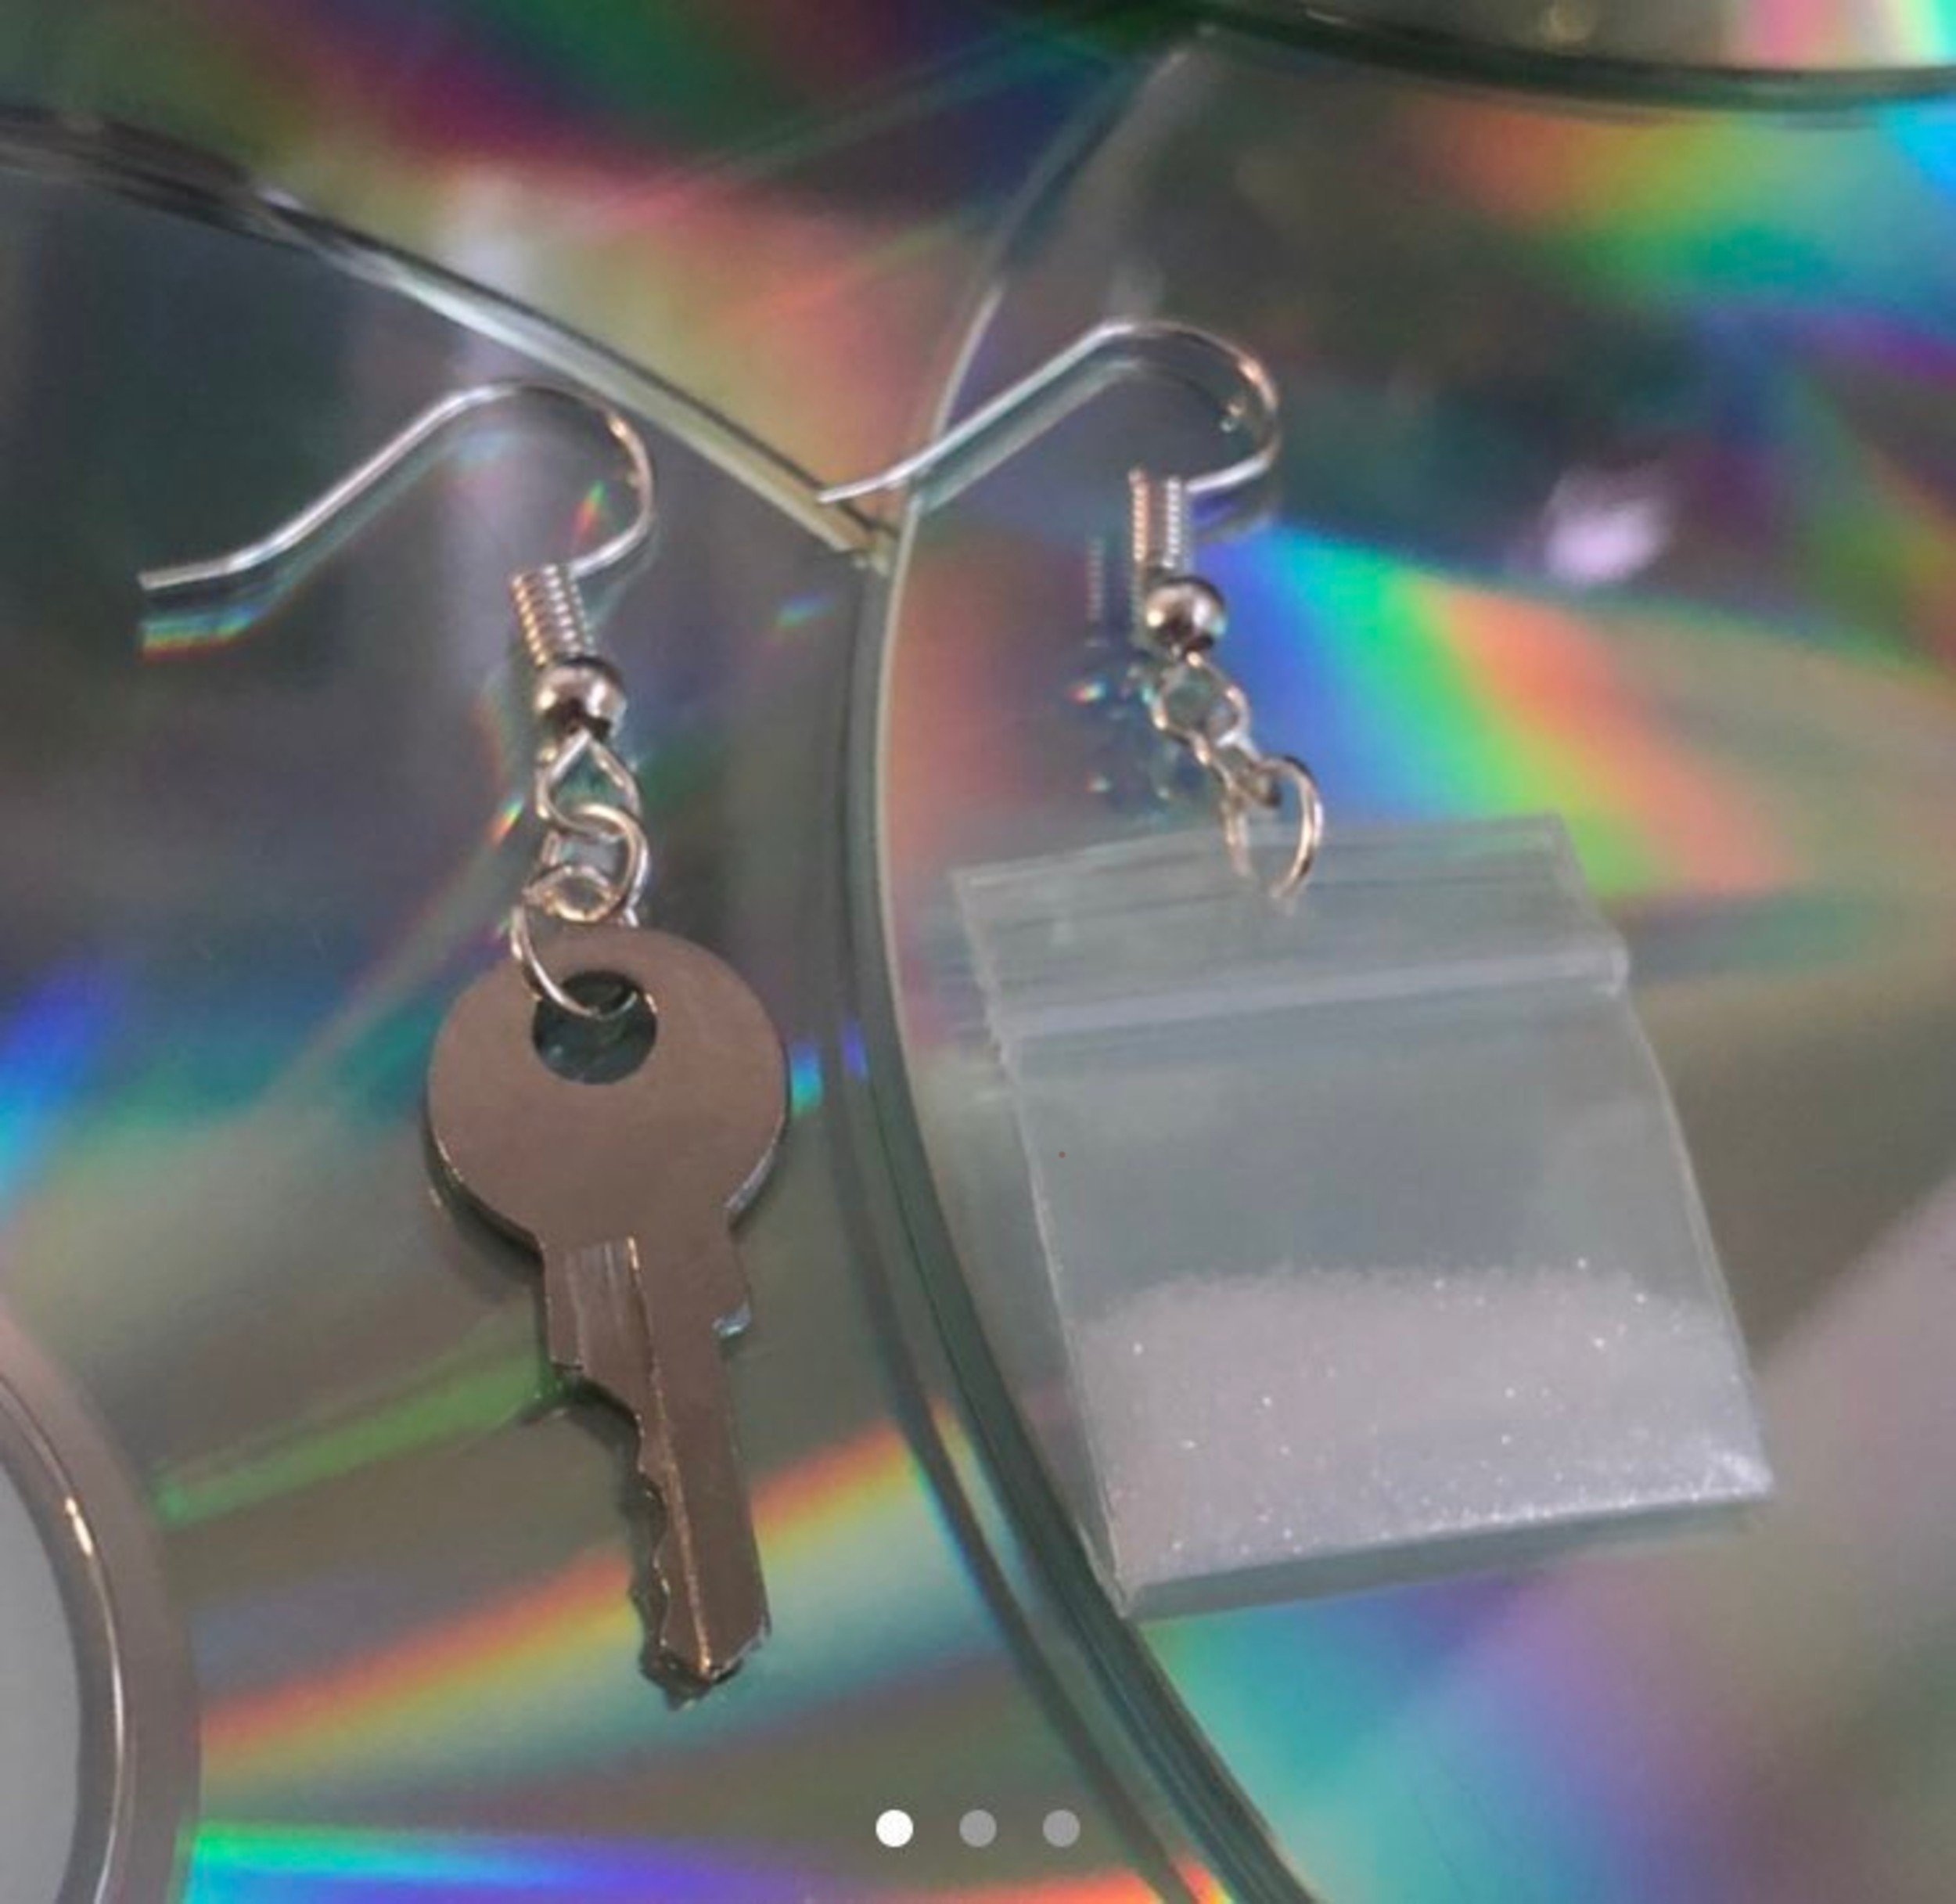 More earrings available online resembling class A and class B drugs. - Viral News